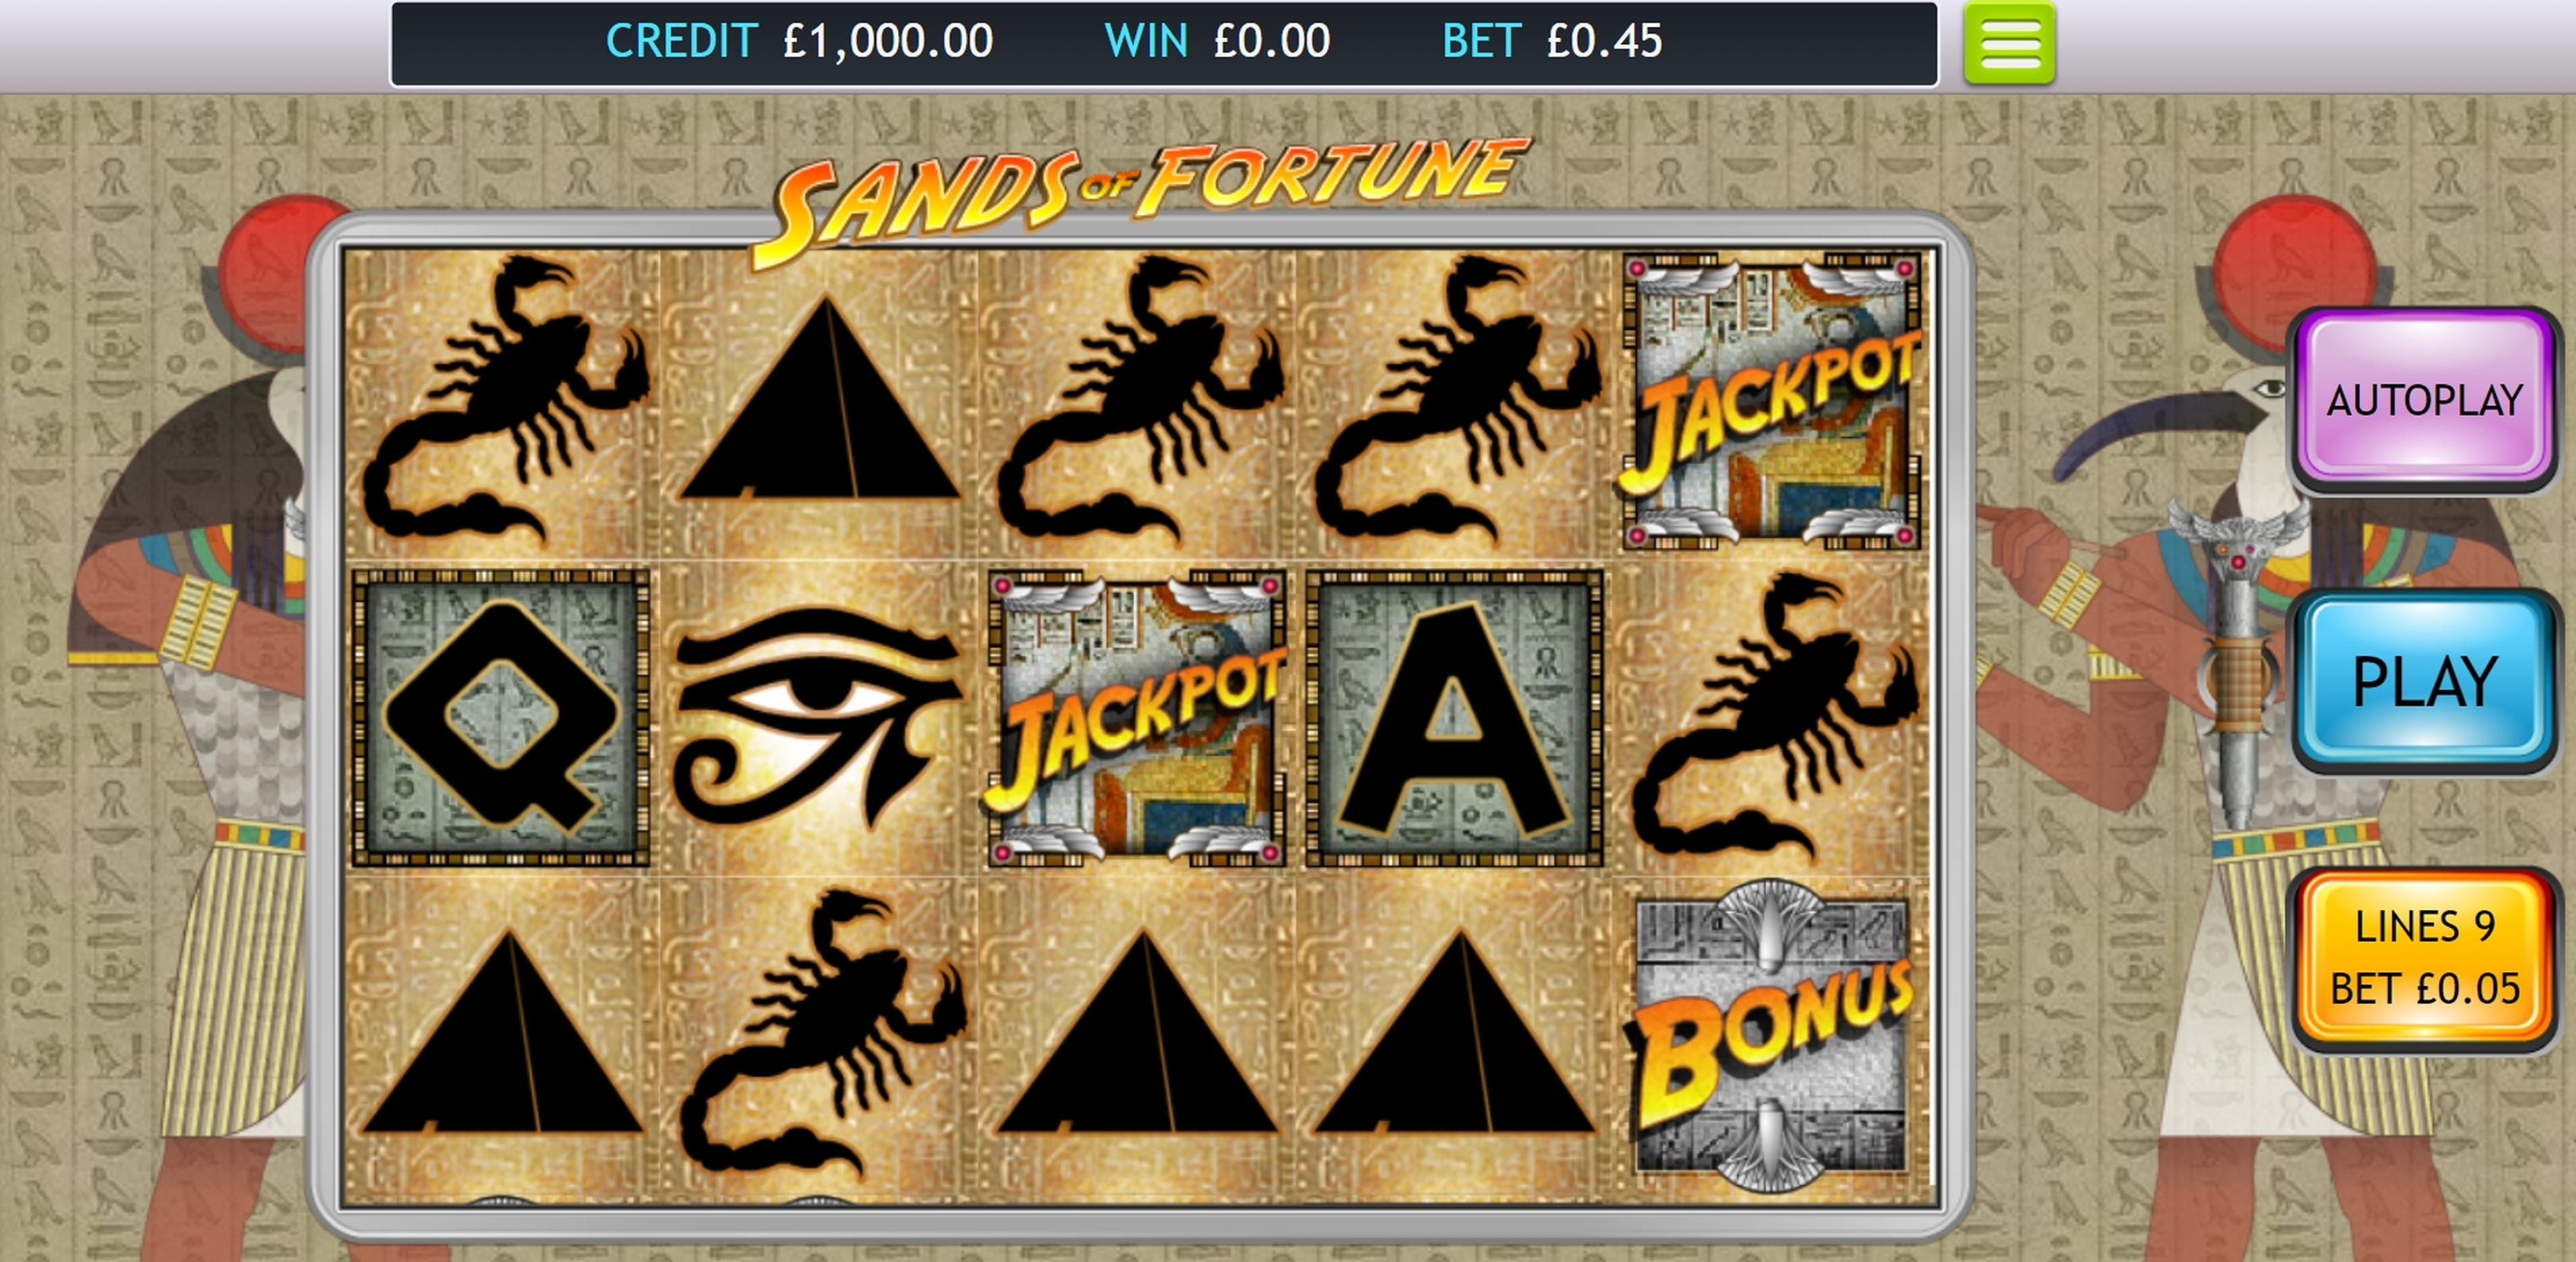 Reels in Sands of Fortune Slot Game by OpenBet